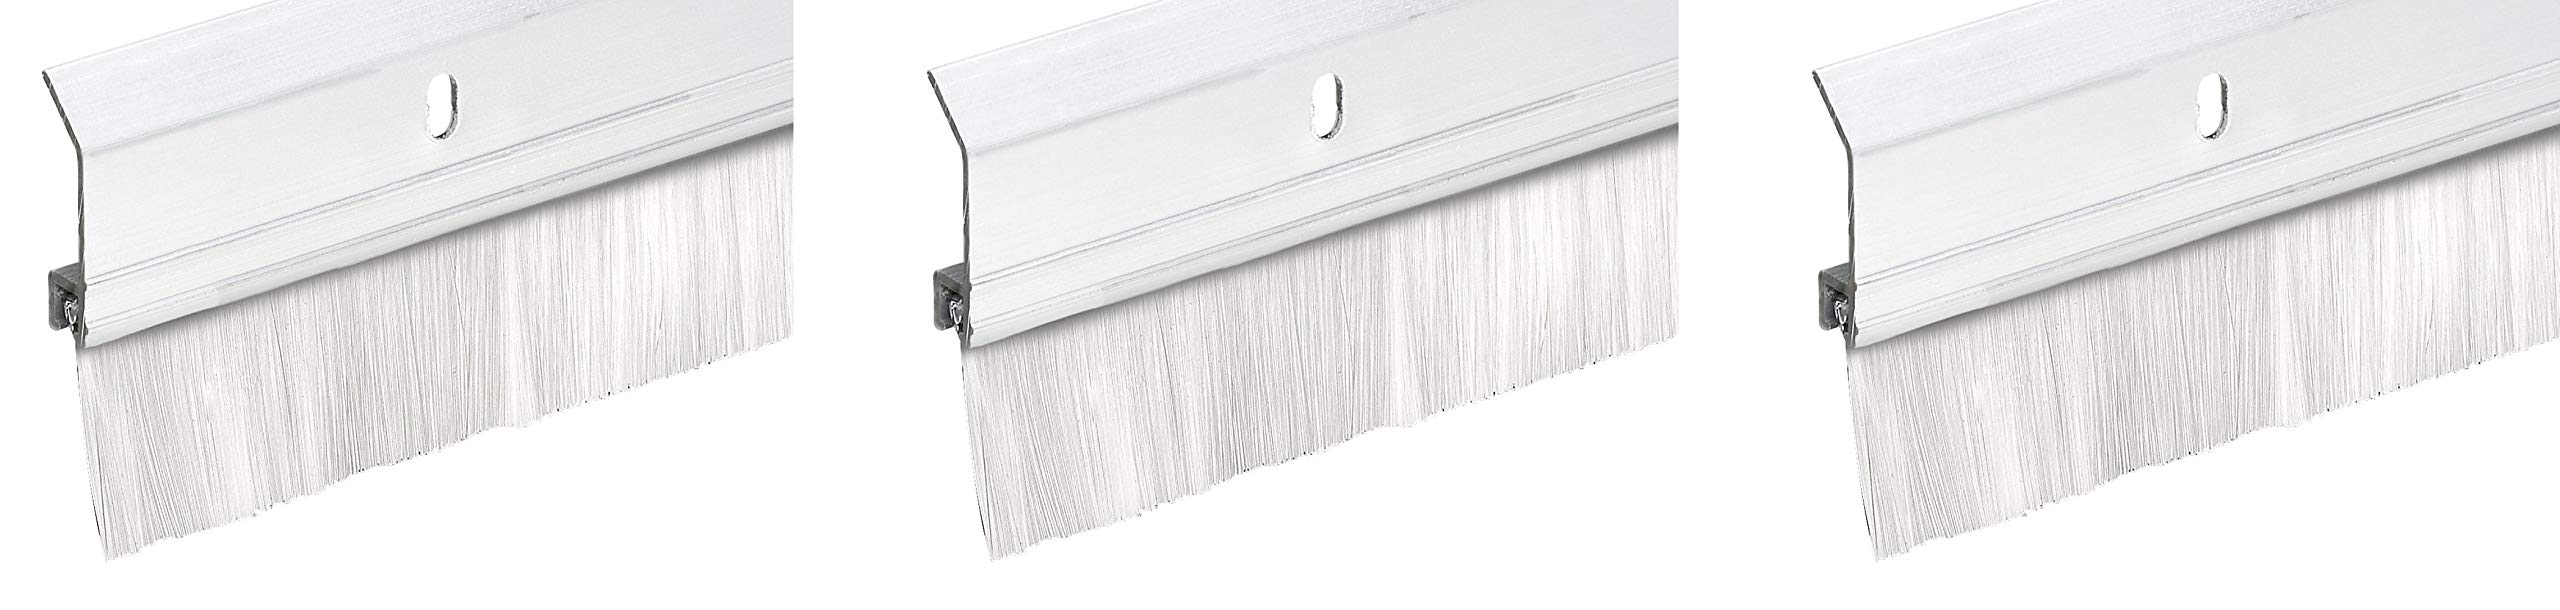 Frost King SB36W 2'' x 36'' Extra Aluminum/Brush Door Sweep, White (Thrее Рack, White)